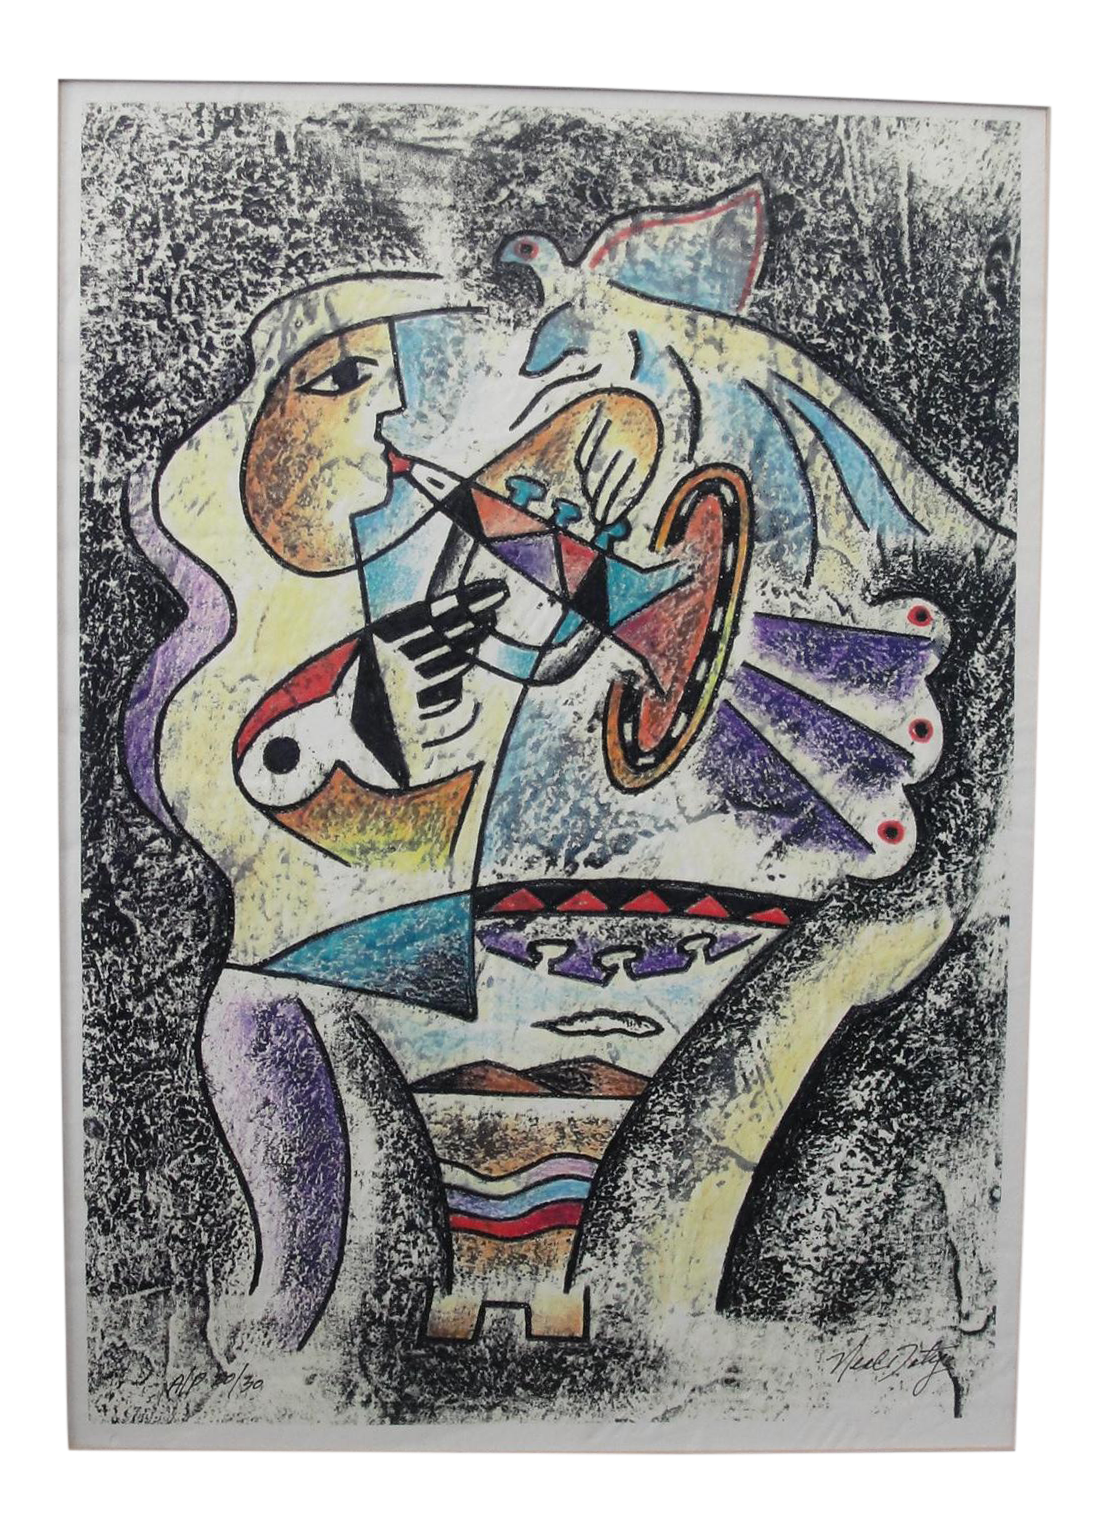 Cubism drawing kid. Neal doty cubist expressionist